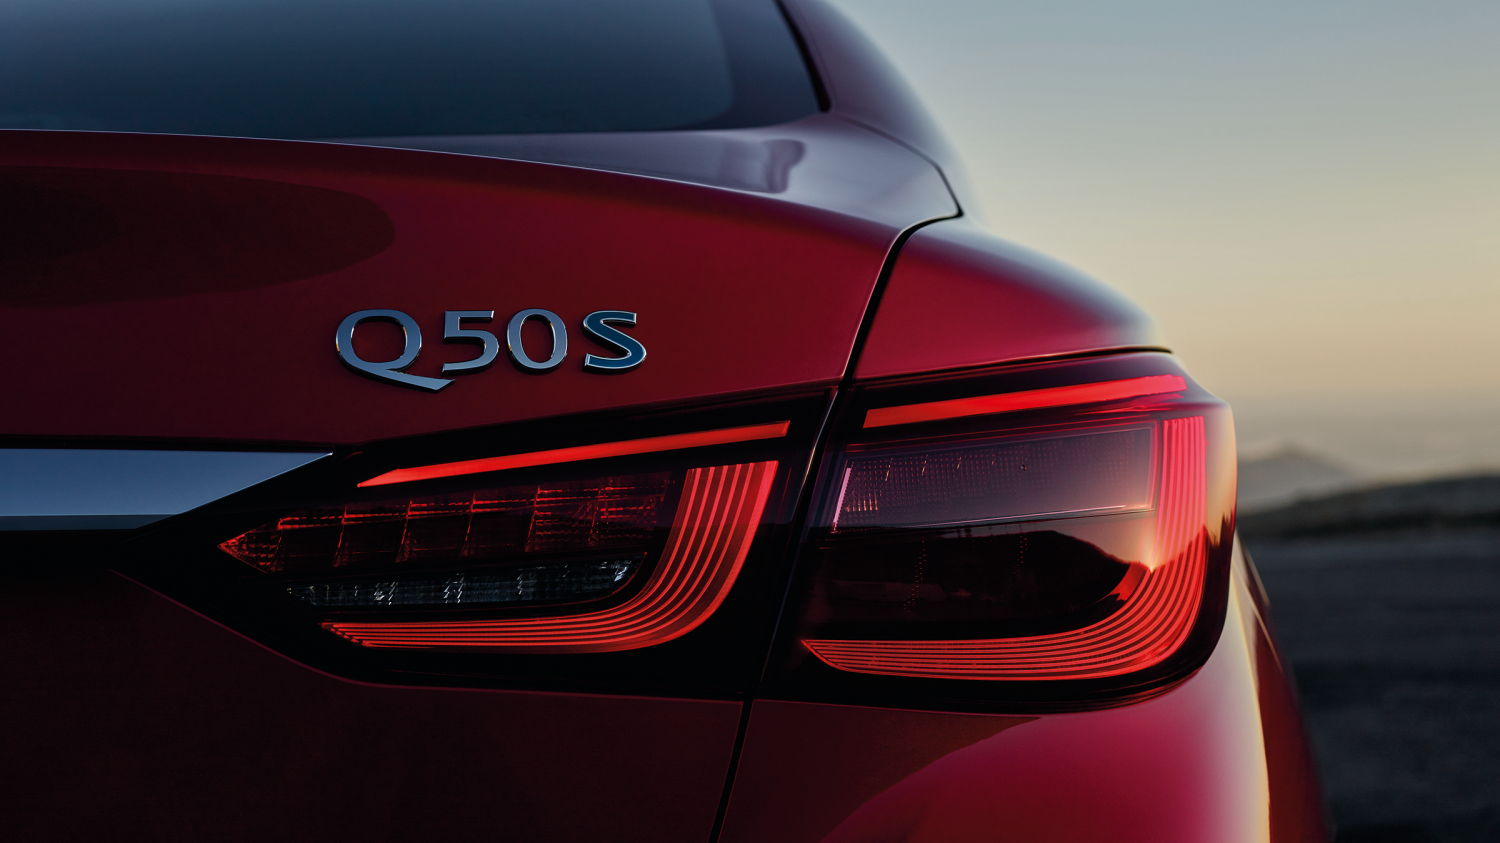 2018 INFINITI Q50 Red Sport Sedan Design | Enhanced LED Taillights